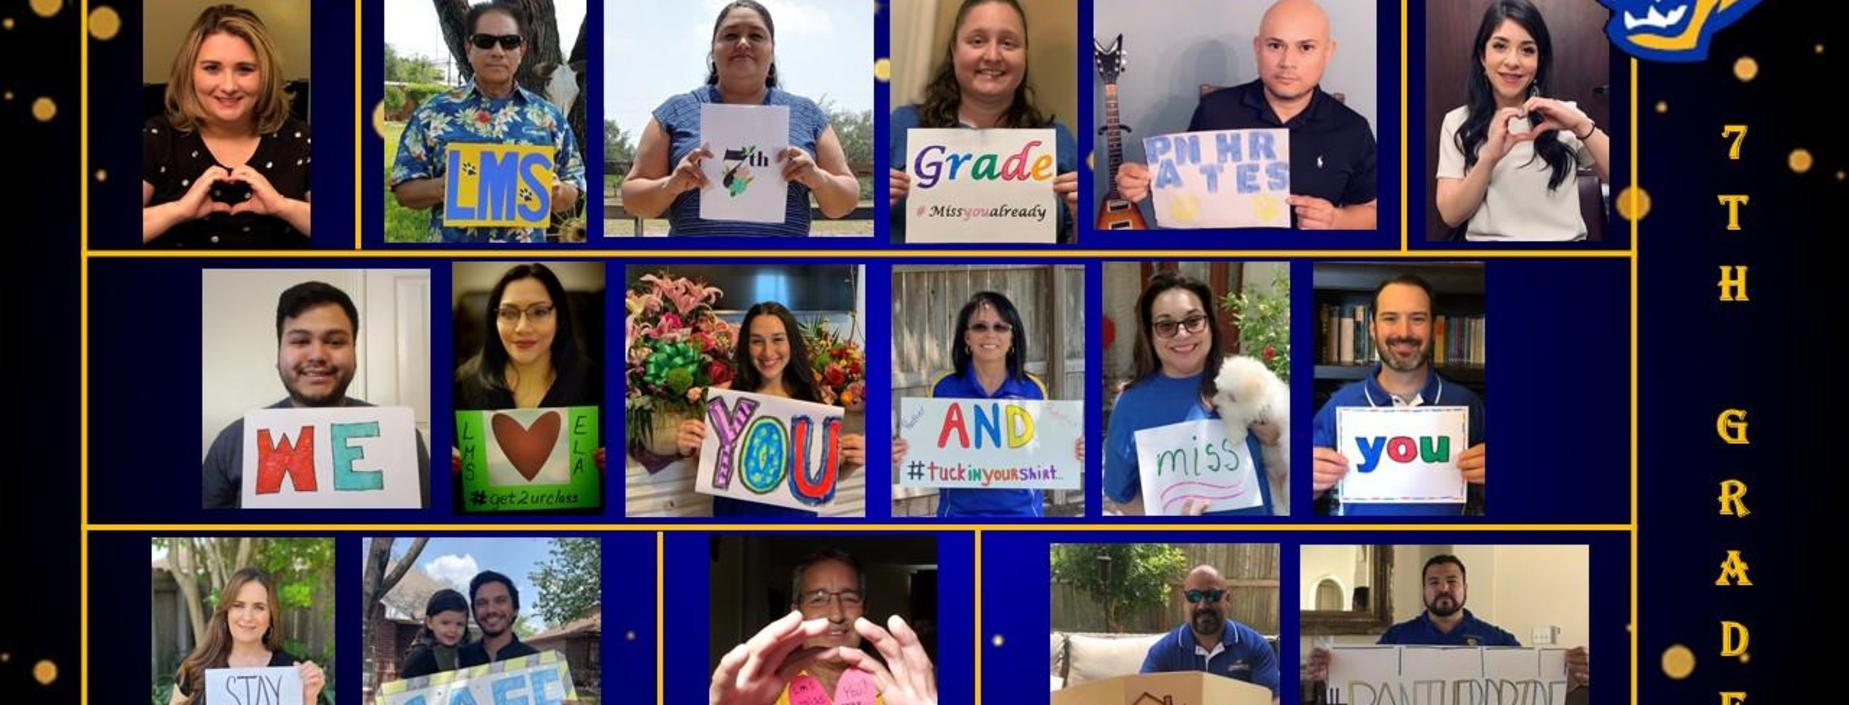 7th Grade staff with message to students